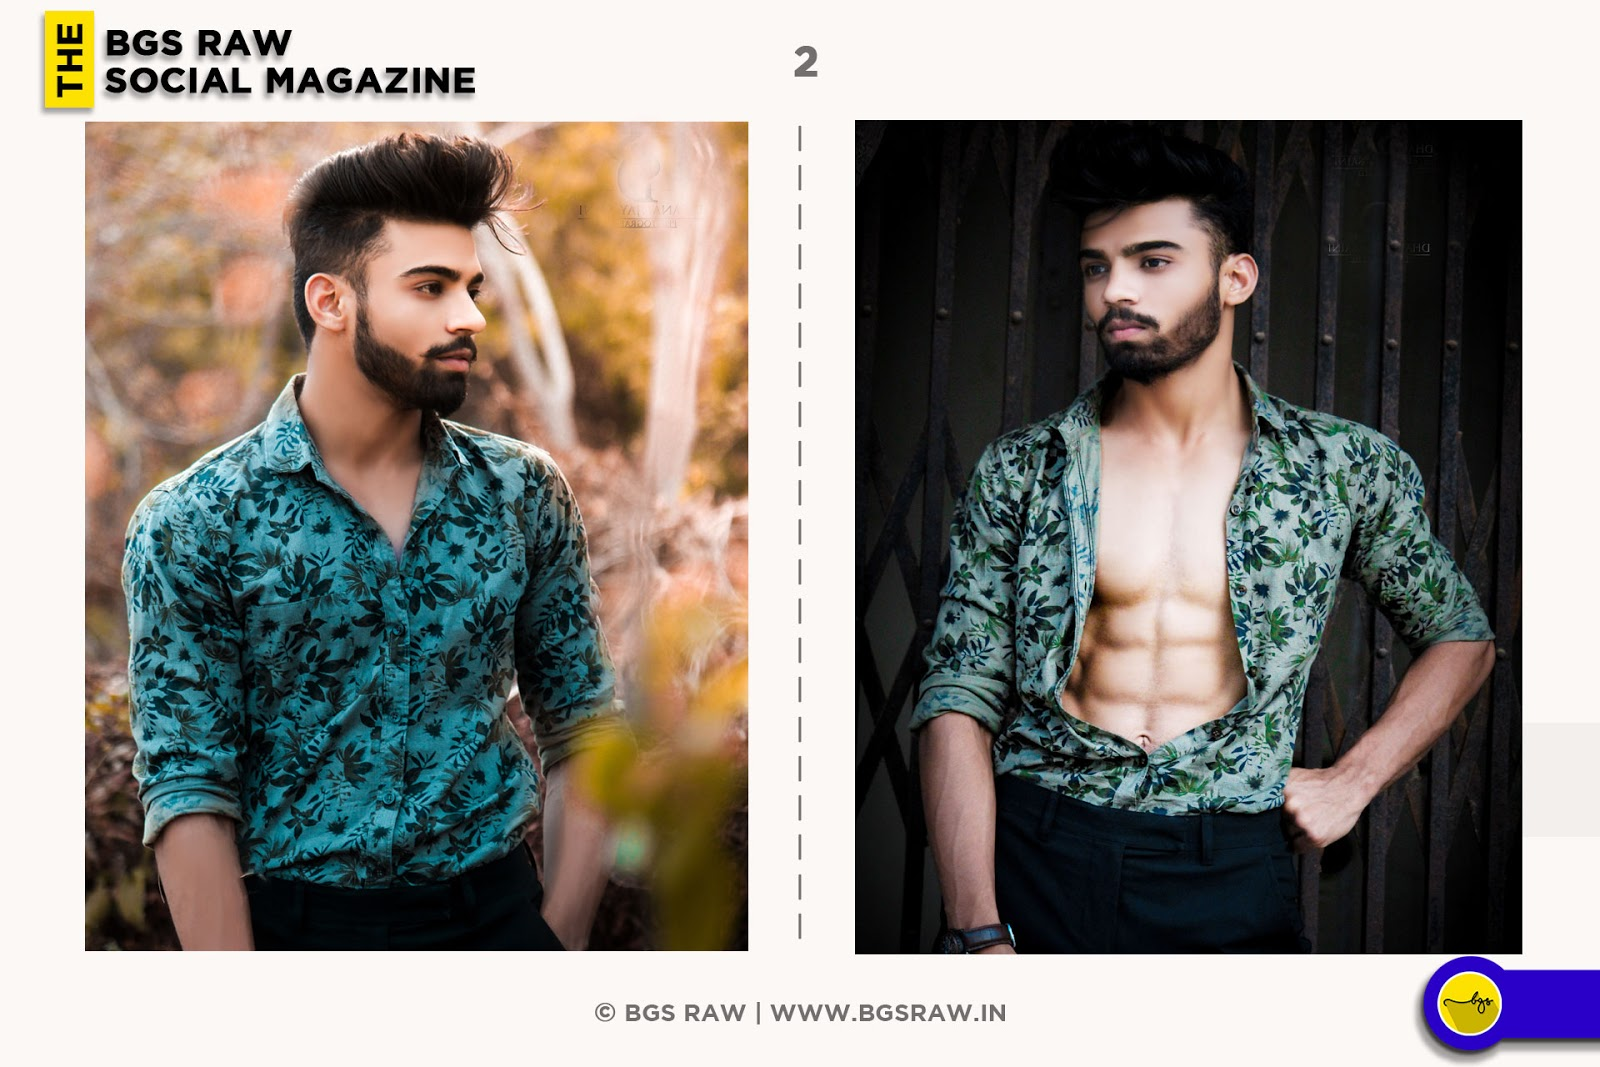 Naveen Jangid is a fashion blogger, photograpgy influencer, gymnastic, gold medalist